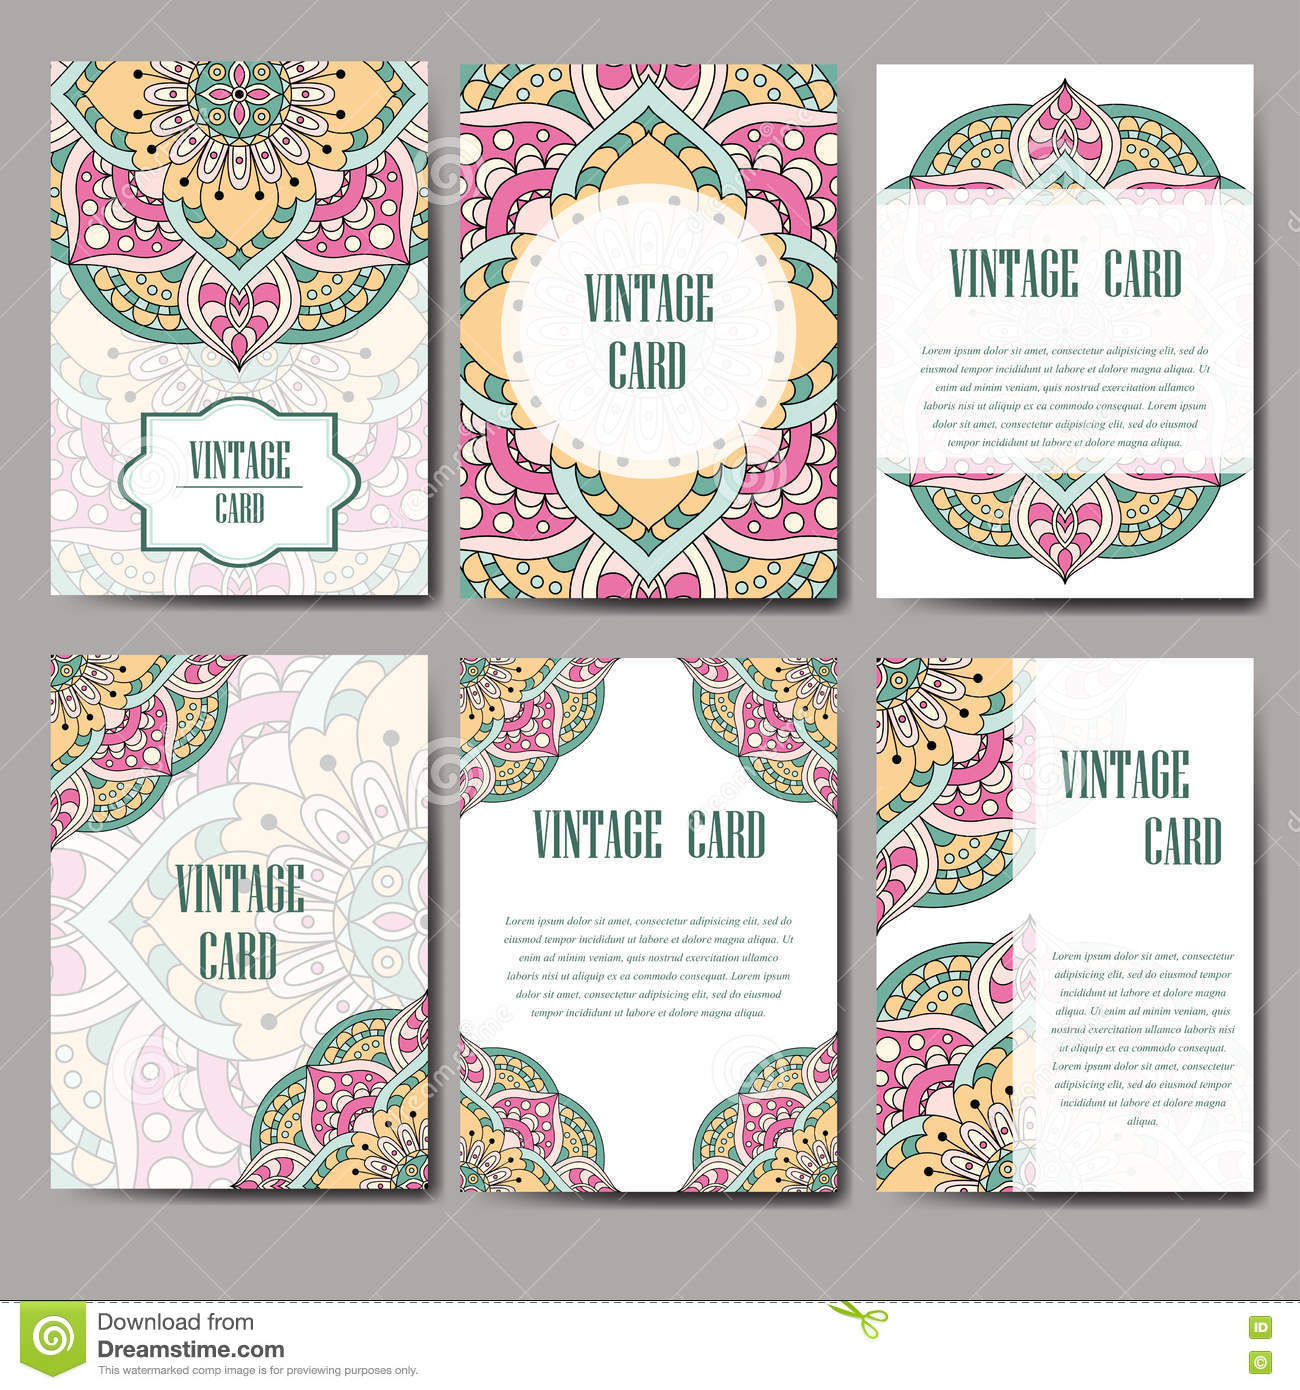 Ornament party invitations - Invitation Graphic Card With Mandala Decorative Ornament For Card Design Wedding Bithday